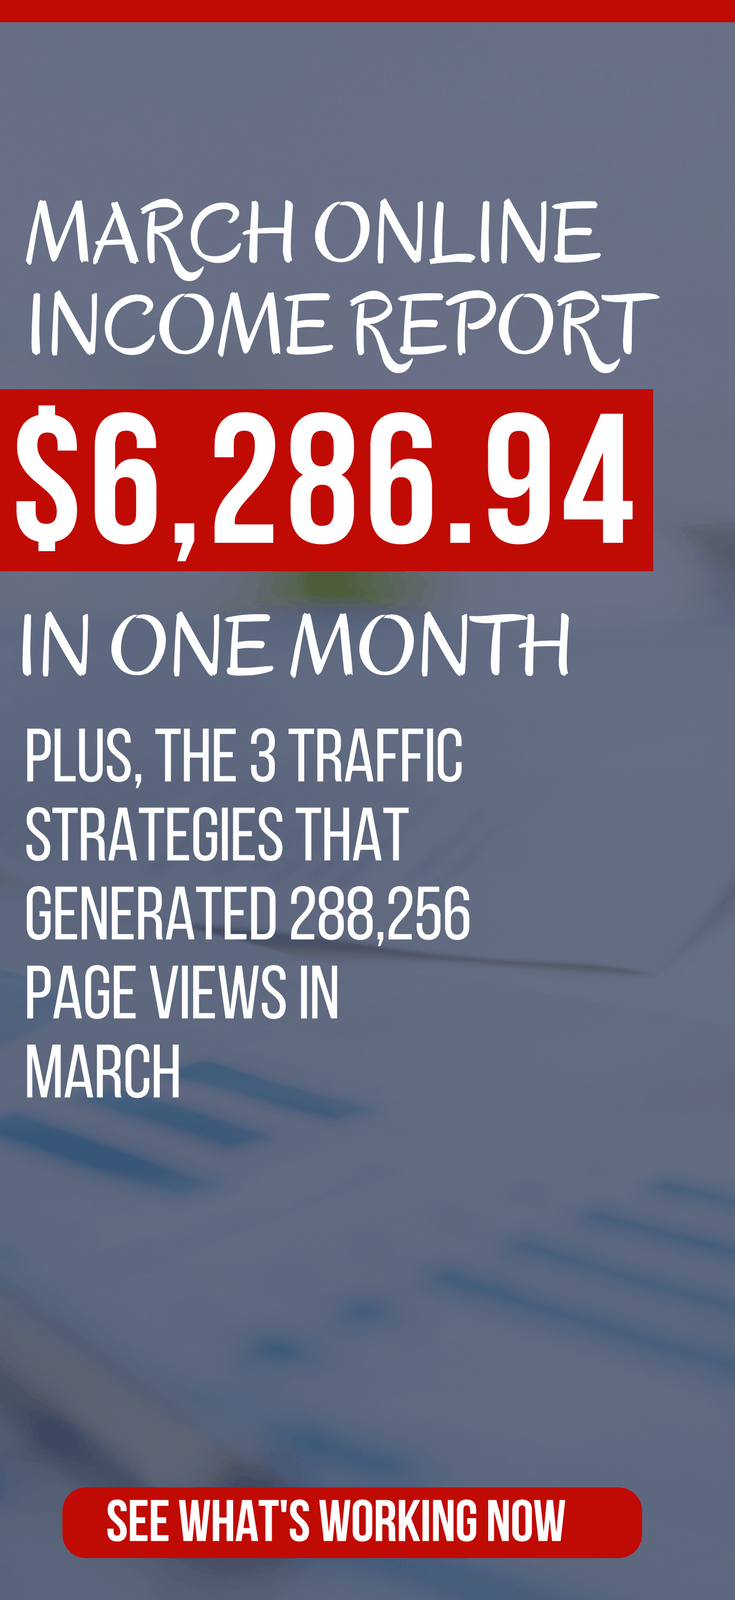 March 2018 Personal Finance Blog Income and Traffic Reportblog income report | blog traffic tips social media | income reports blogging | make money blogging fast#thewaystowealth #blog #blogging #blogger #bloggerlife #marketing #marketingdigital